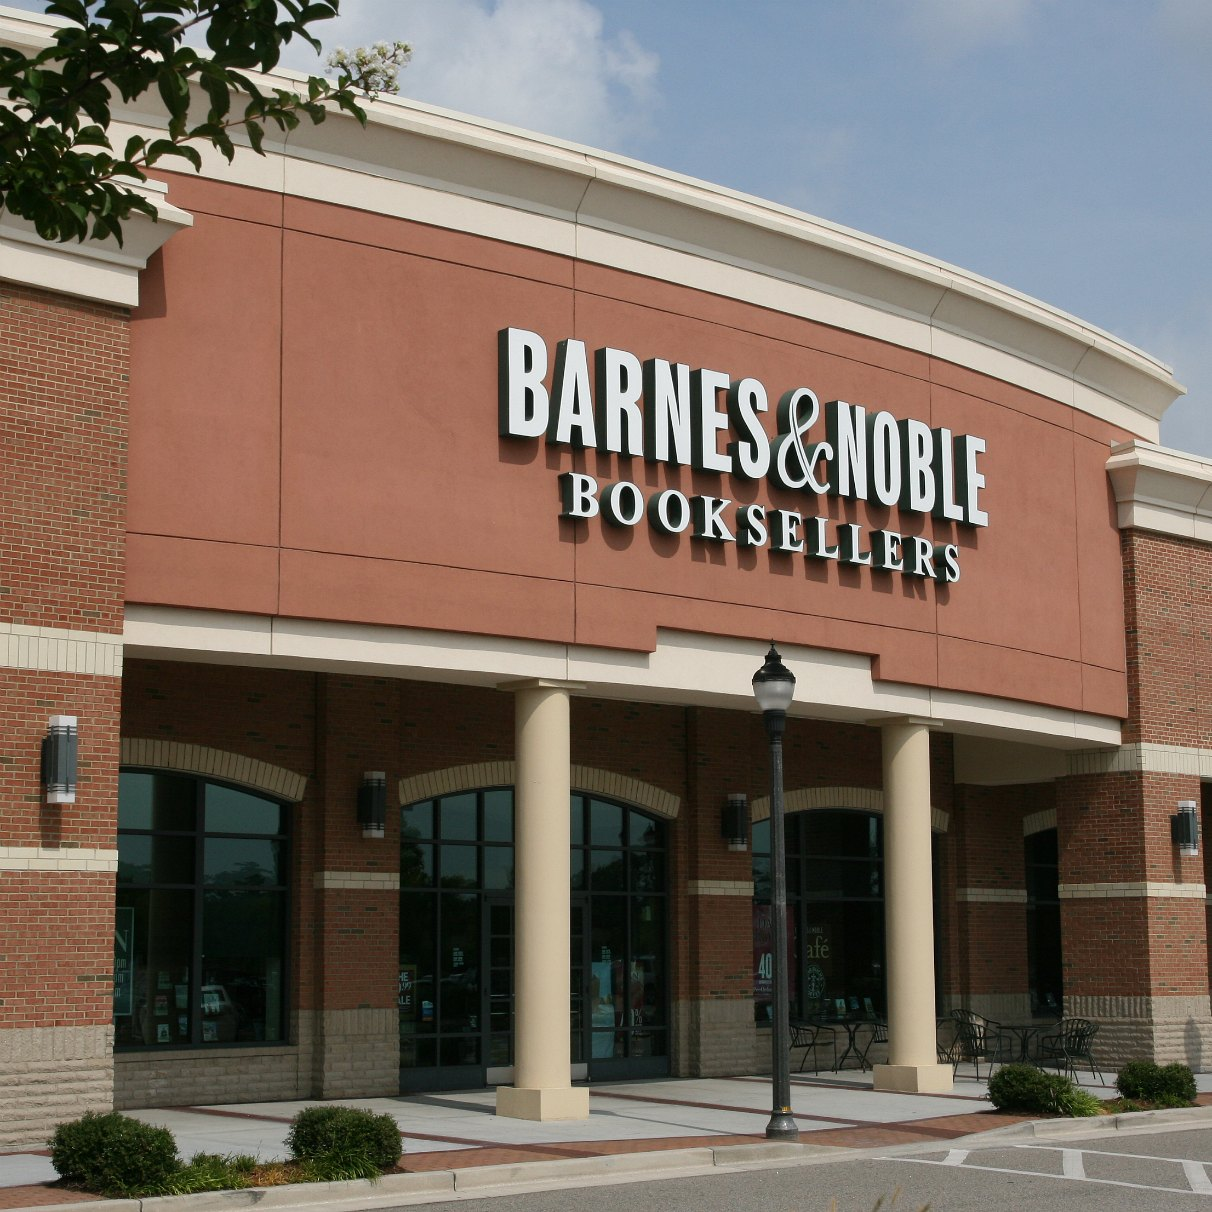 Barnes & Noble And The Writer: Friend Or Foe?